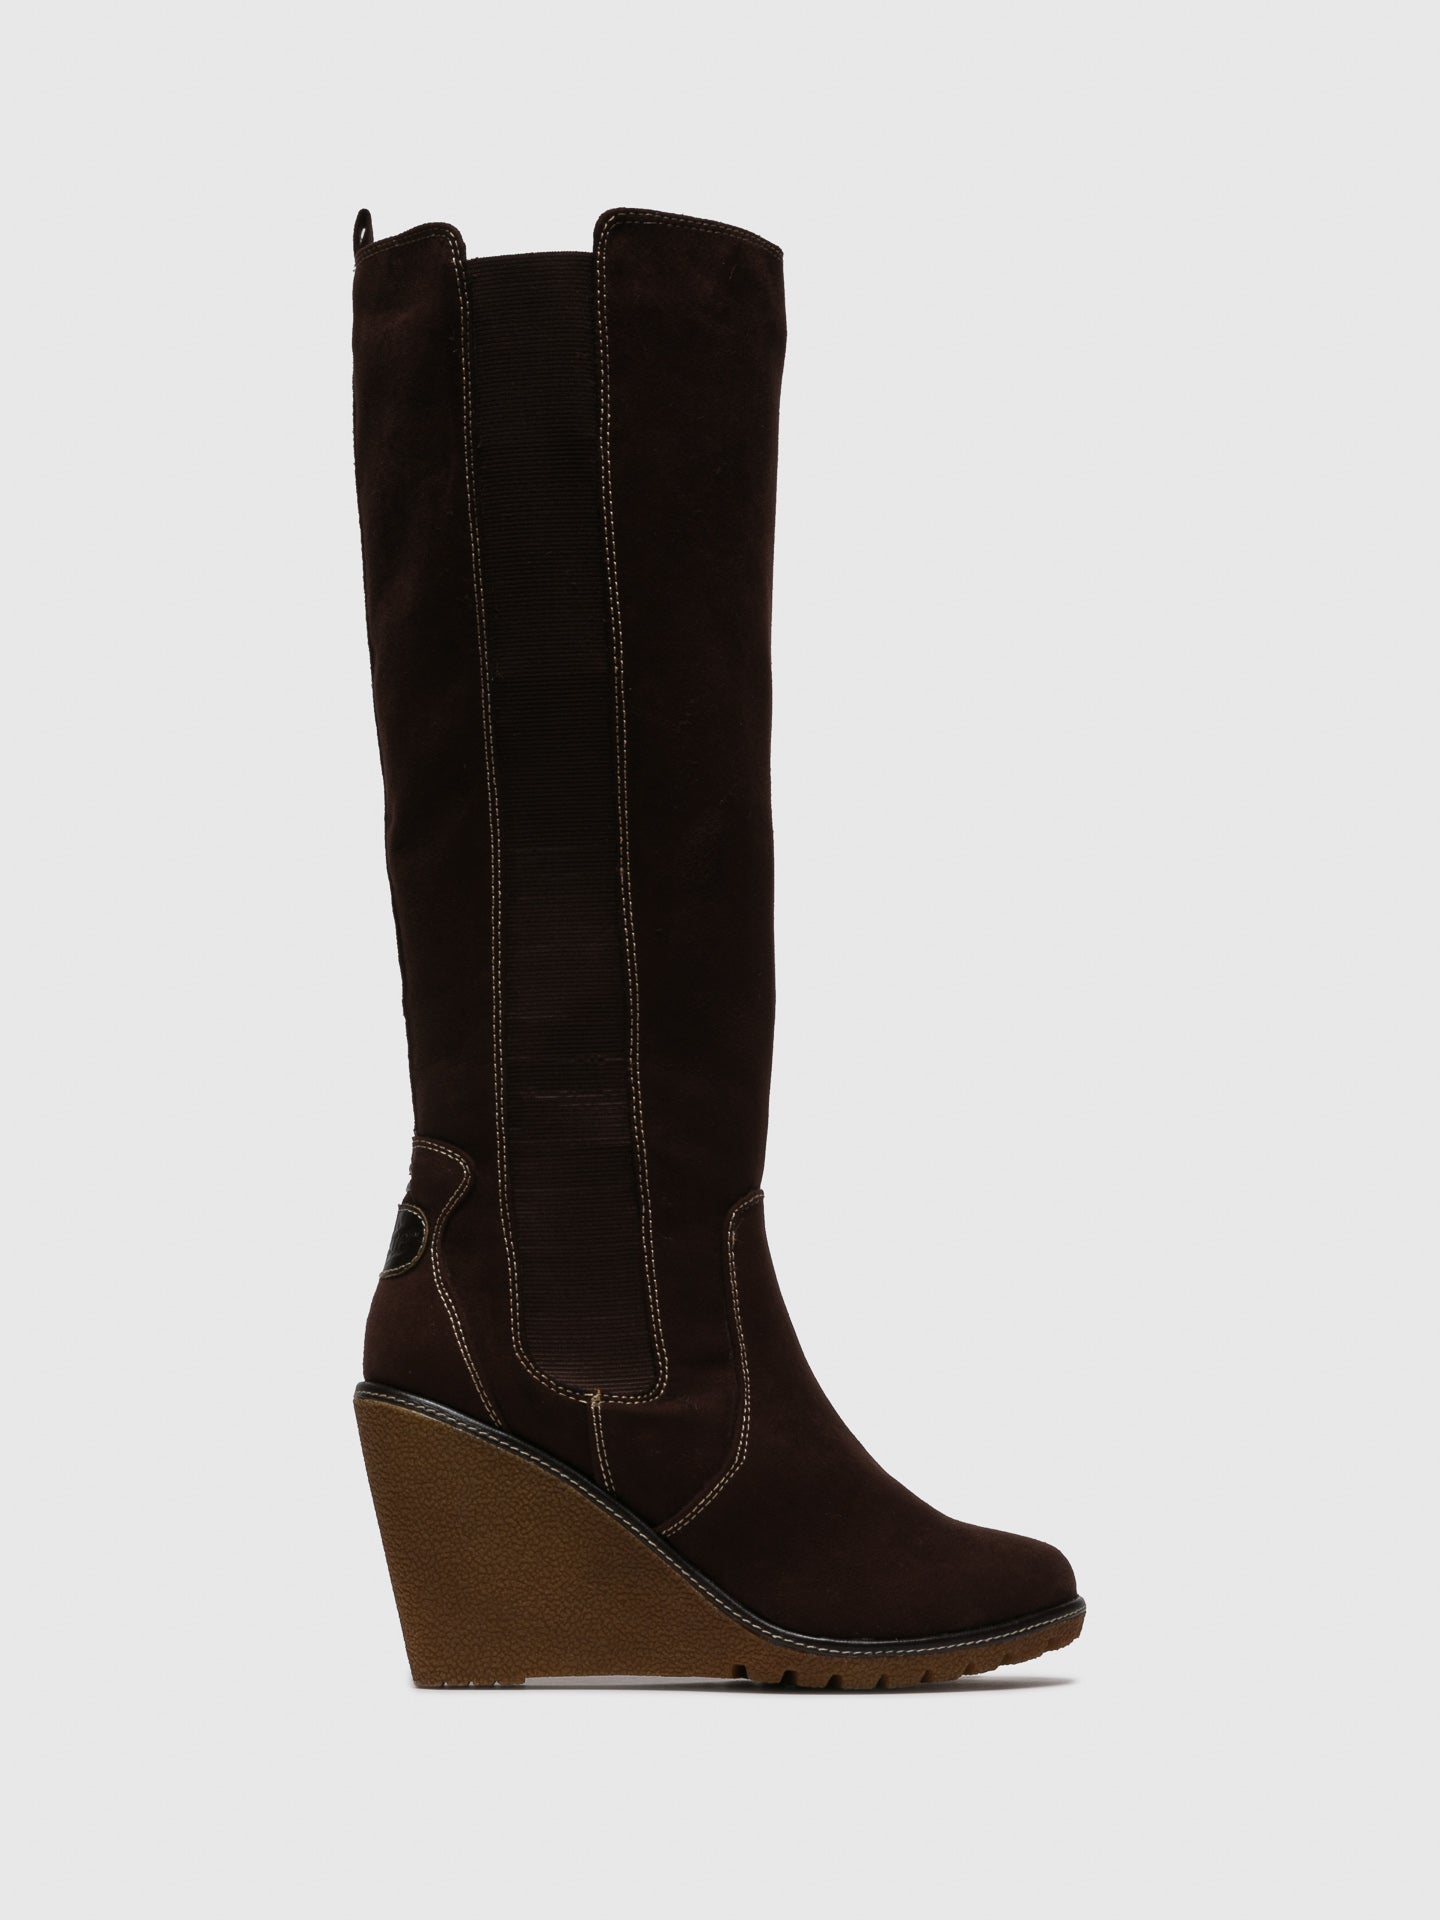 Pixie Chocolate Knee-High Boots